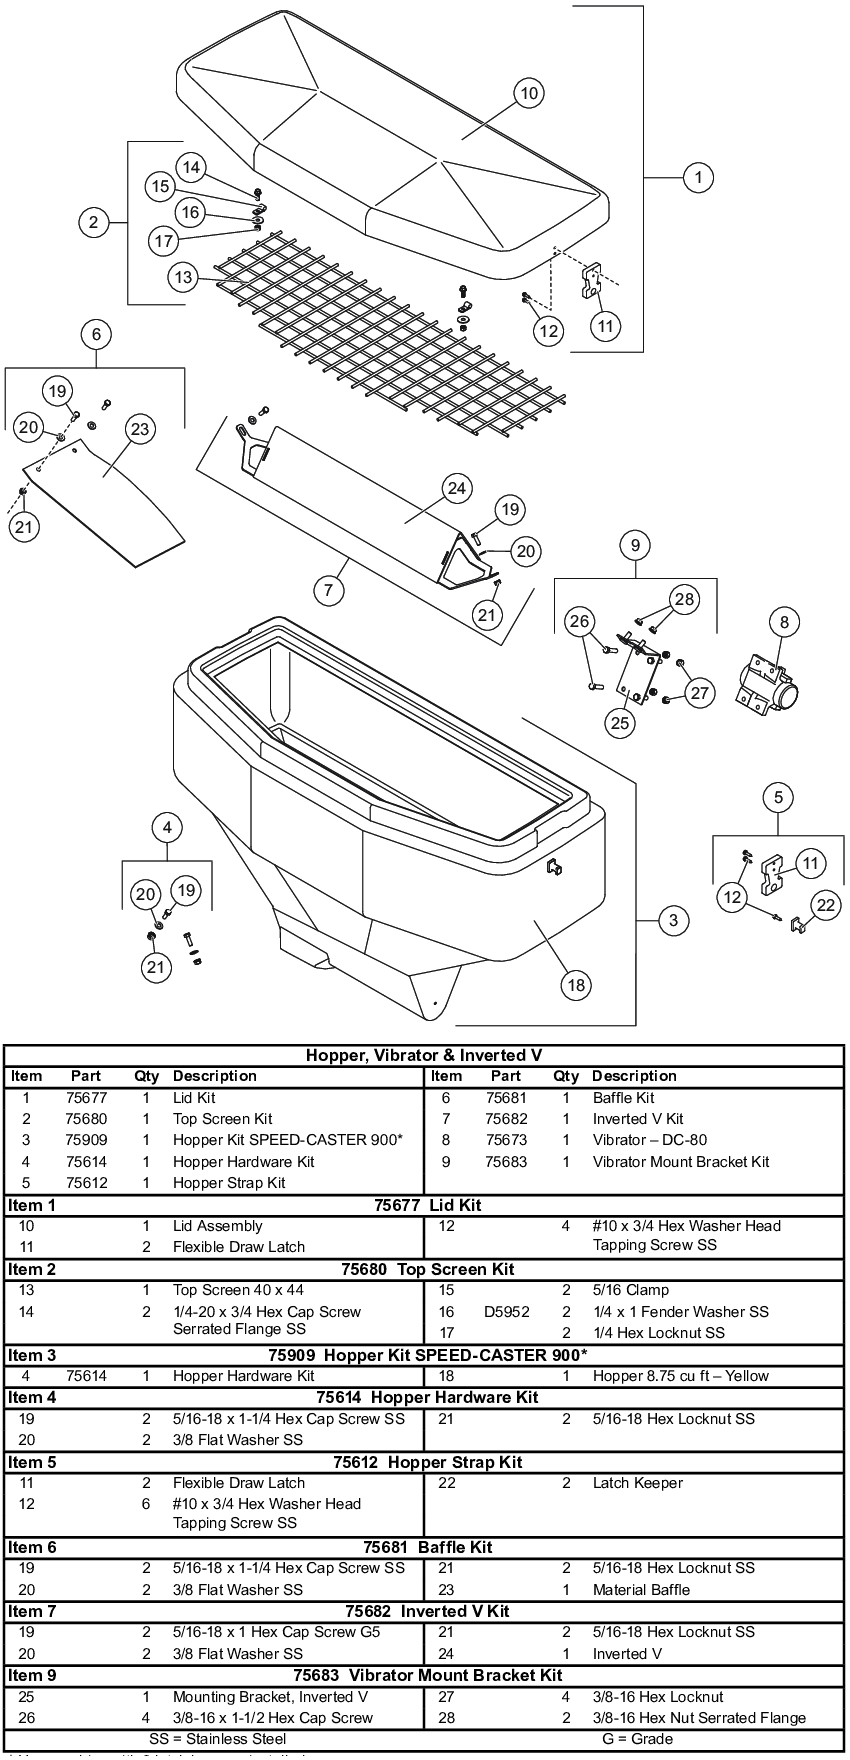 Fisher Poly Caster Wiring Diagram Library Ez V Speed 900 Hopper Vibrator Inverted Parts